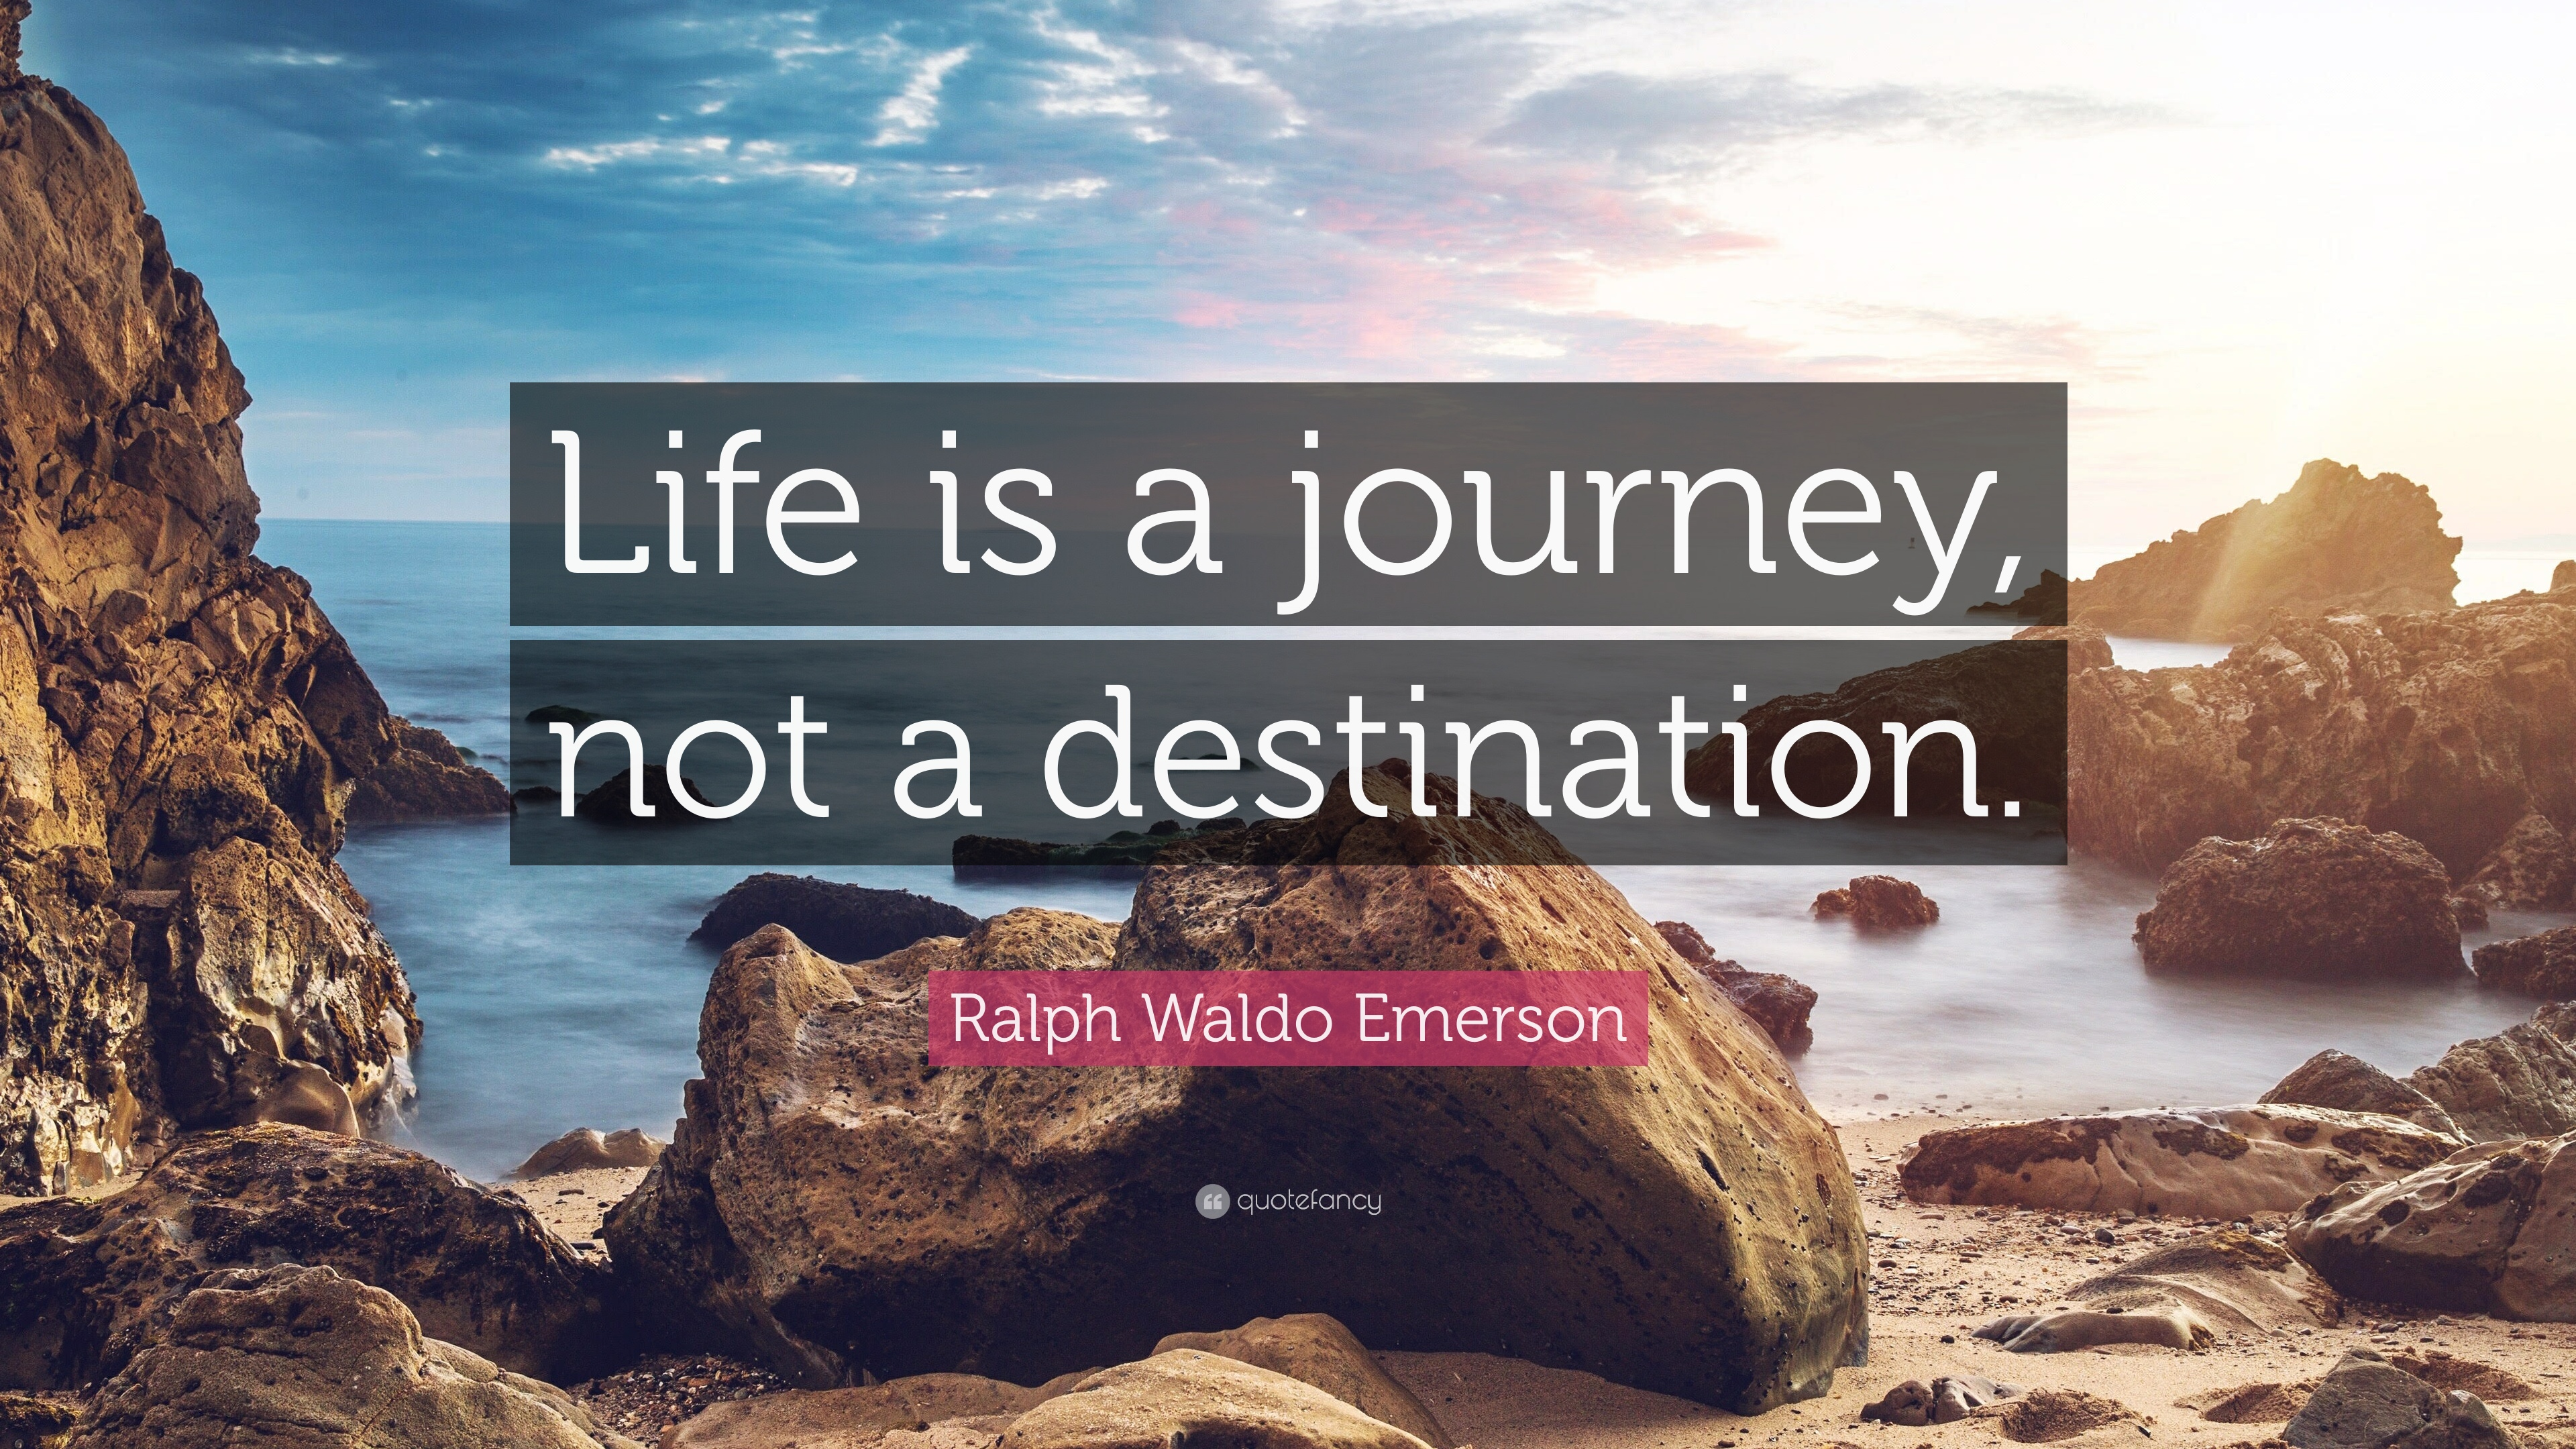 life a journey not a destination essay I believe that life is a journey not a destination learning something new everyday is something i believe that will make your journey worth  this essay, please.